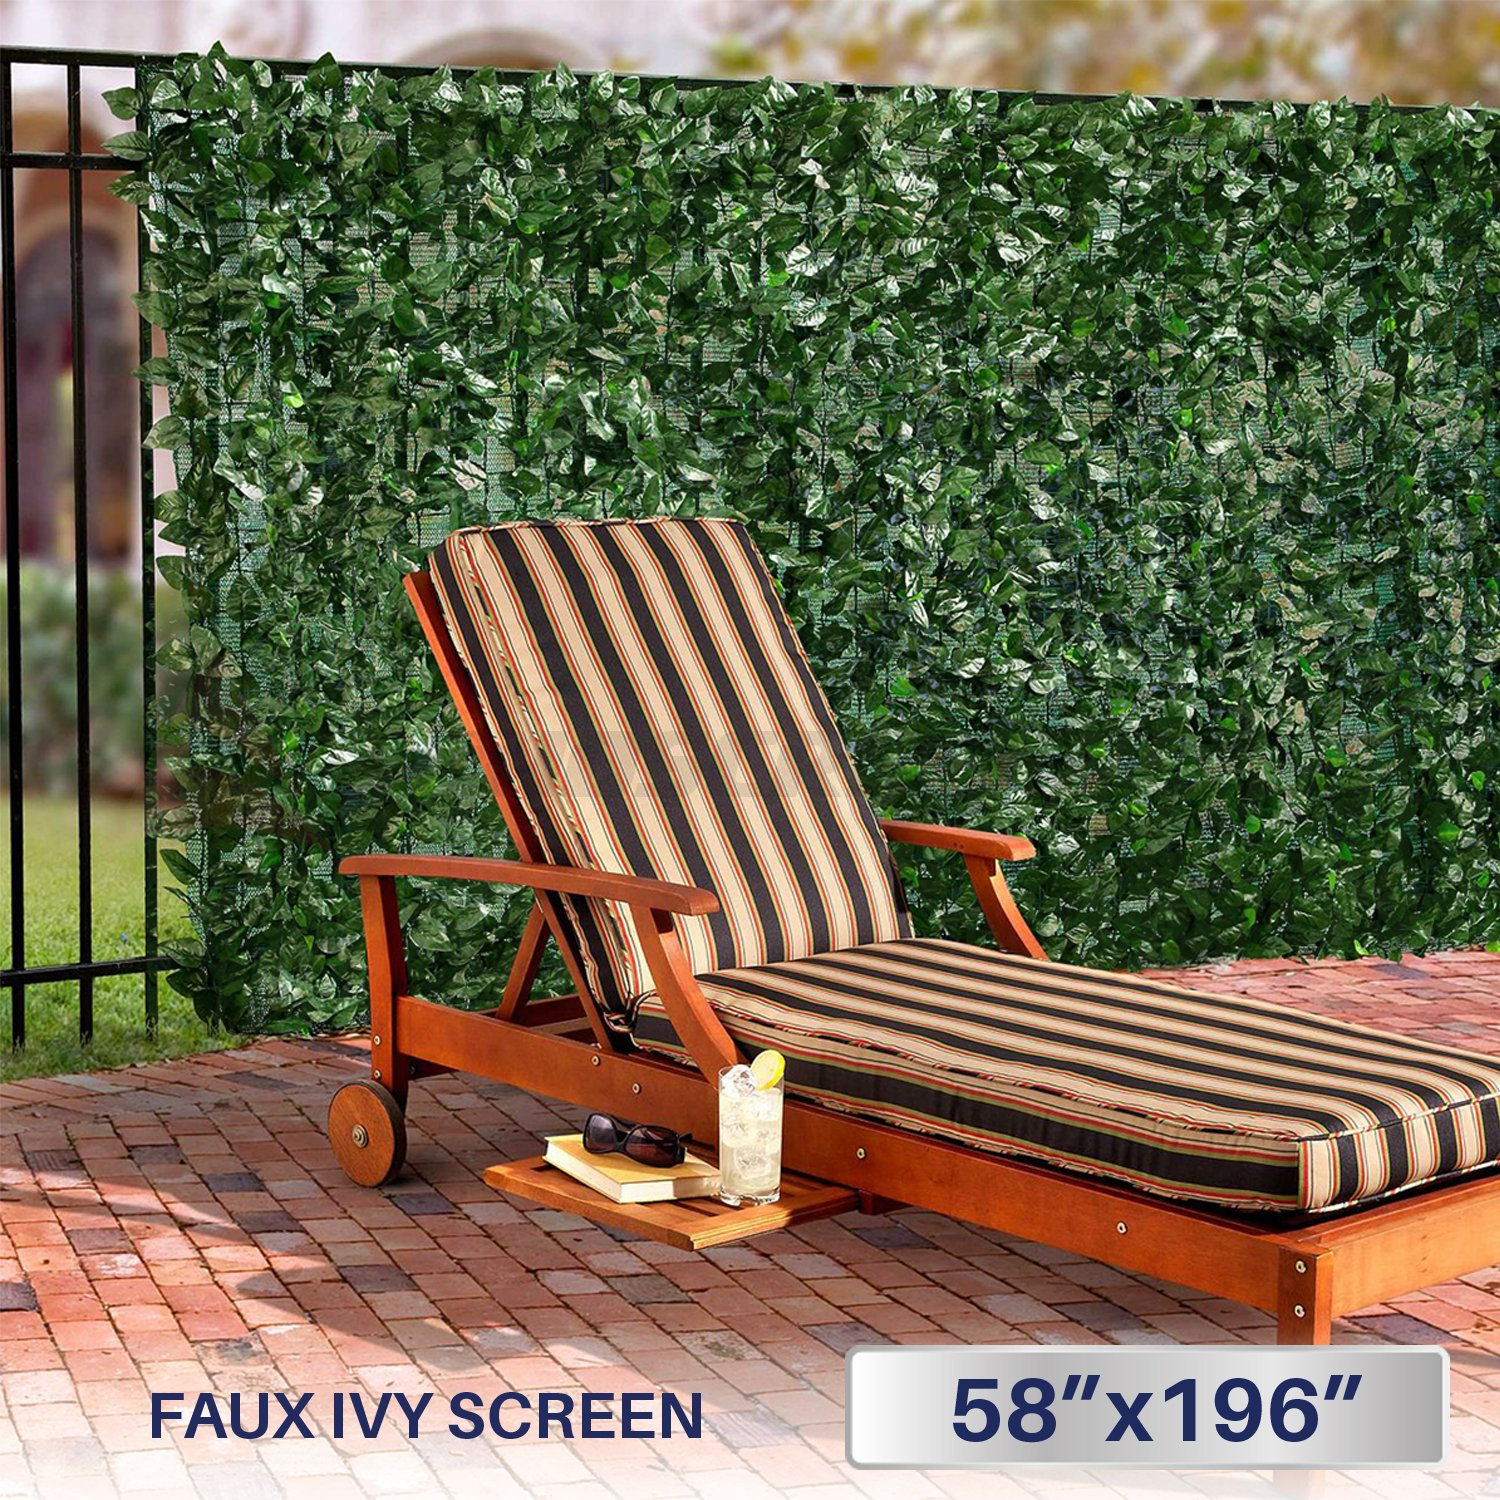 Windscreen4less Artificial Faux Ivy Leaf Decorative Fence Screen 58.5'' x 196'' Ivy Leaf Decorative Fence Screen by Windscreen4less